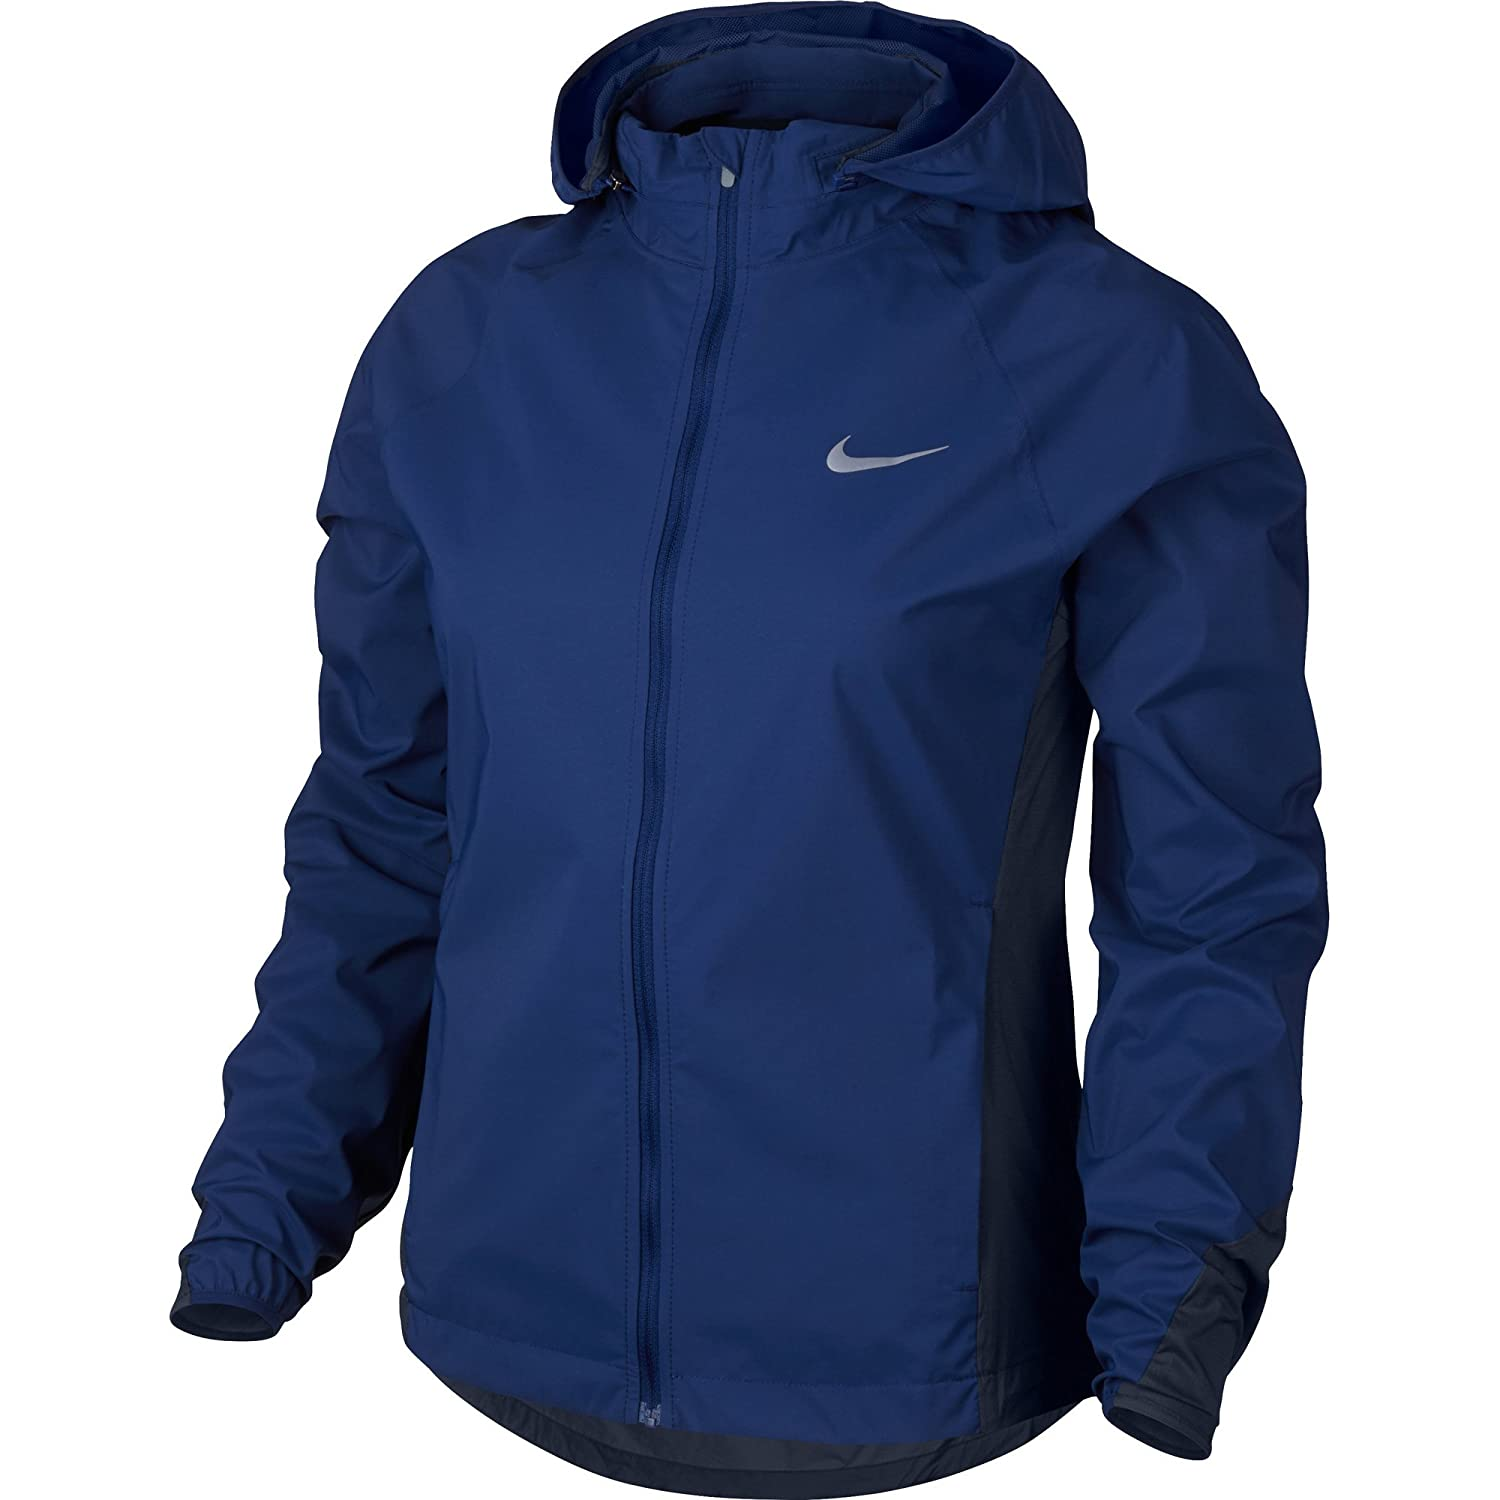 Womens Running Jackets | Amazon.com